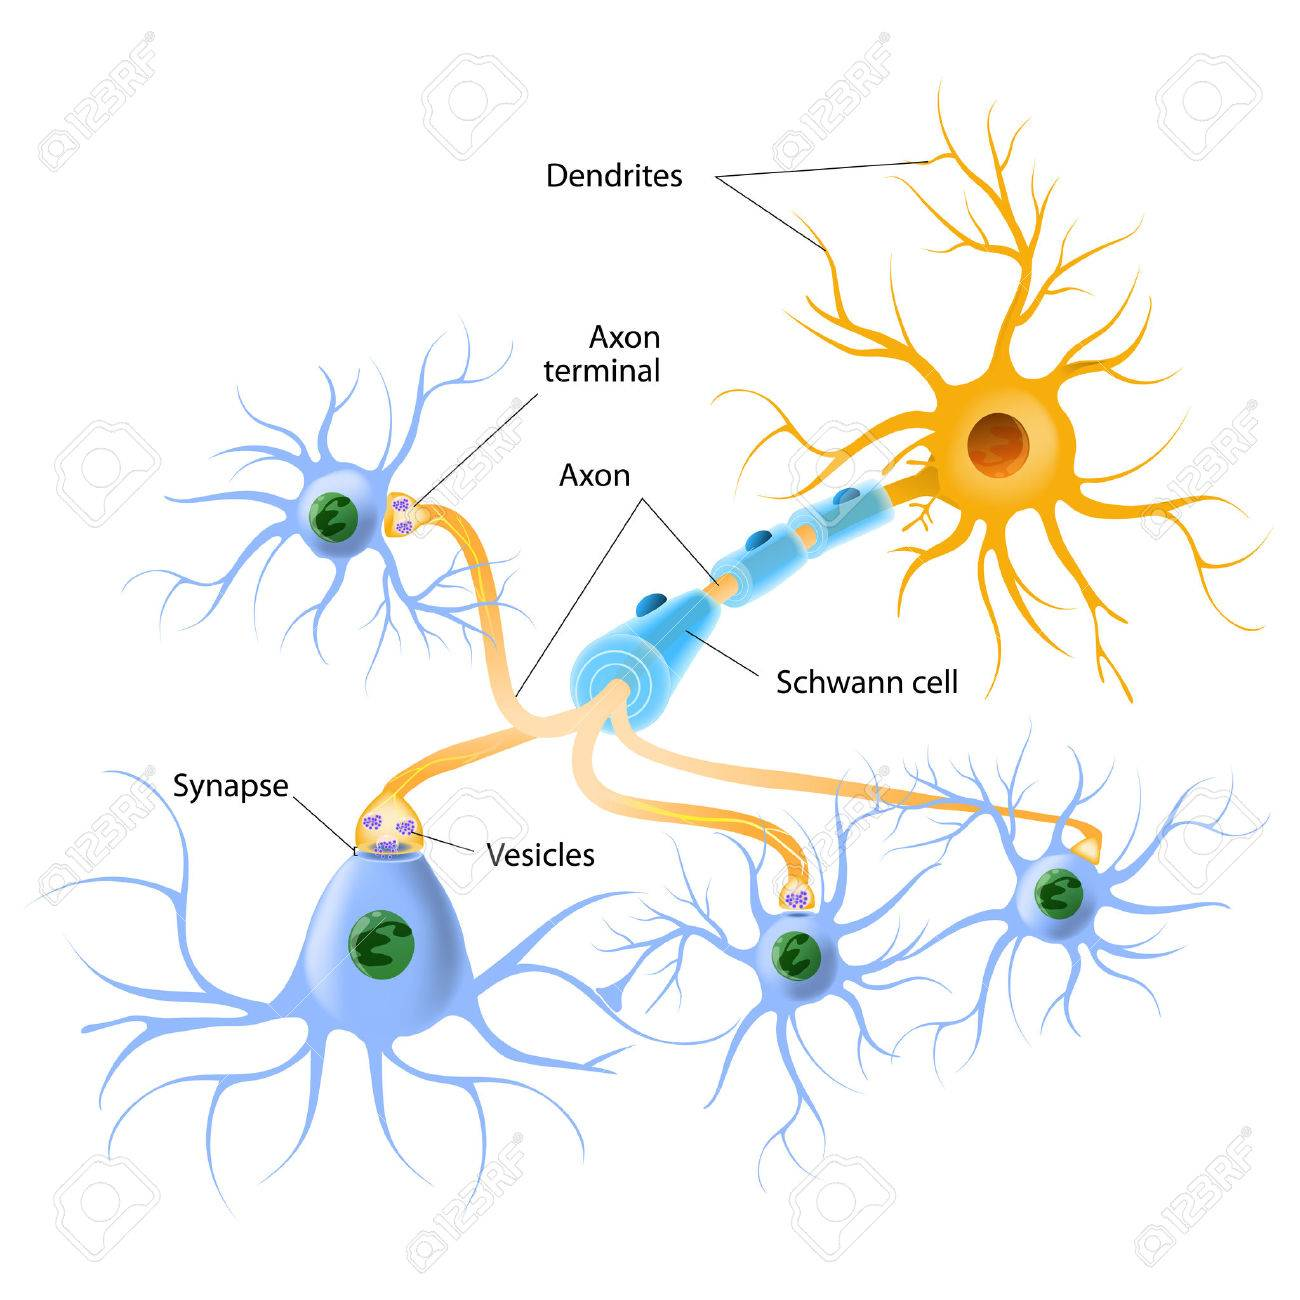 1181 Neuro Stock Illustrations Cliparts And Royalty Free Vectors Circuit Board Binary Code Vector Clipart Transmission Of Neurotransmitter Release Mechanisms Neurotransmitters Are Packaged Into Synaptic Vesicles Transmit Signals From A Neuron To